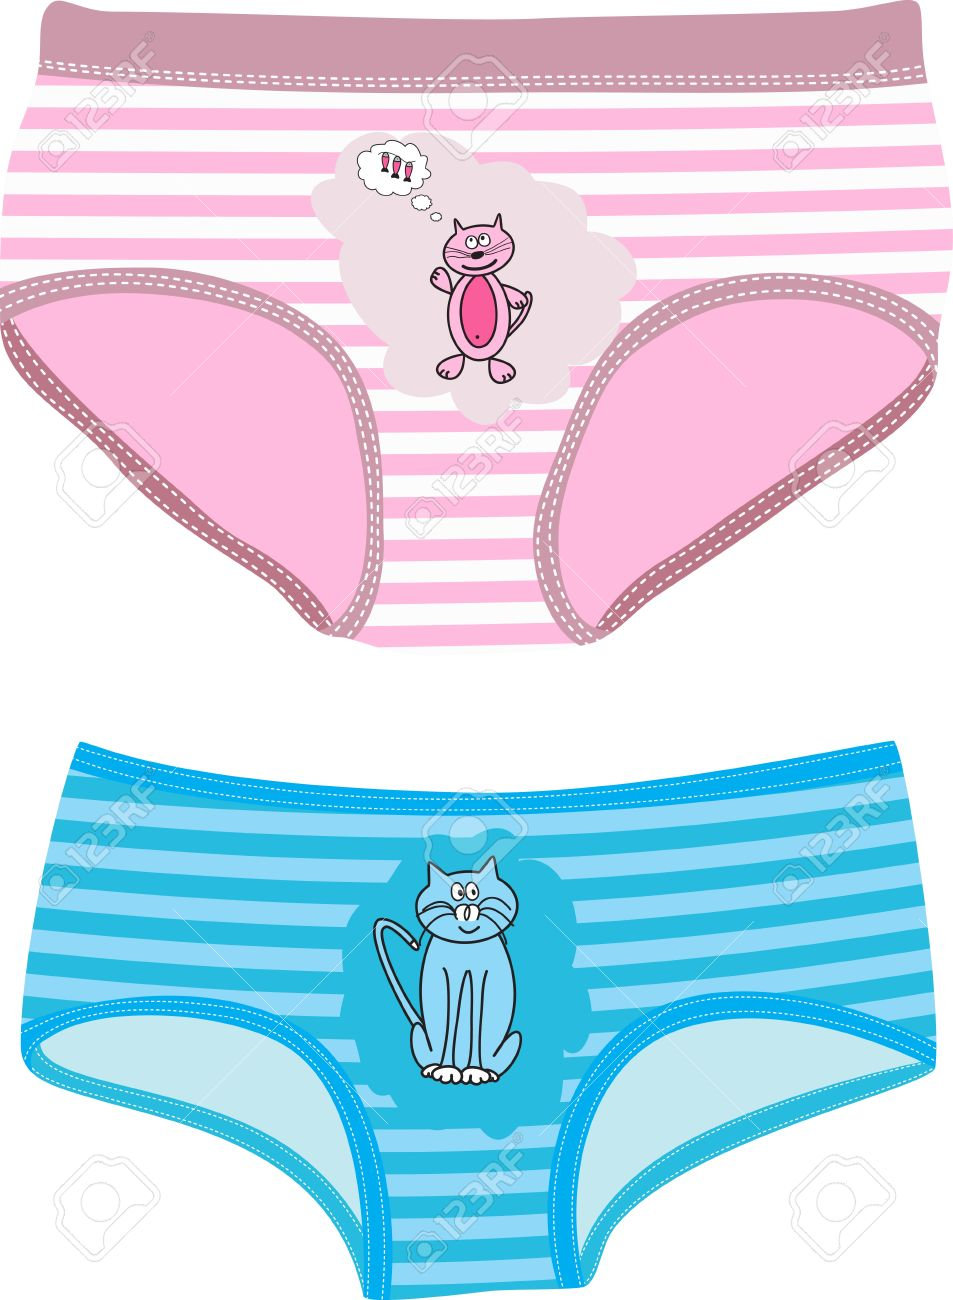 image royalty free download For portal . Kids underwear clipart.